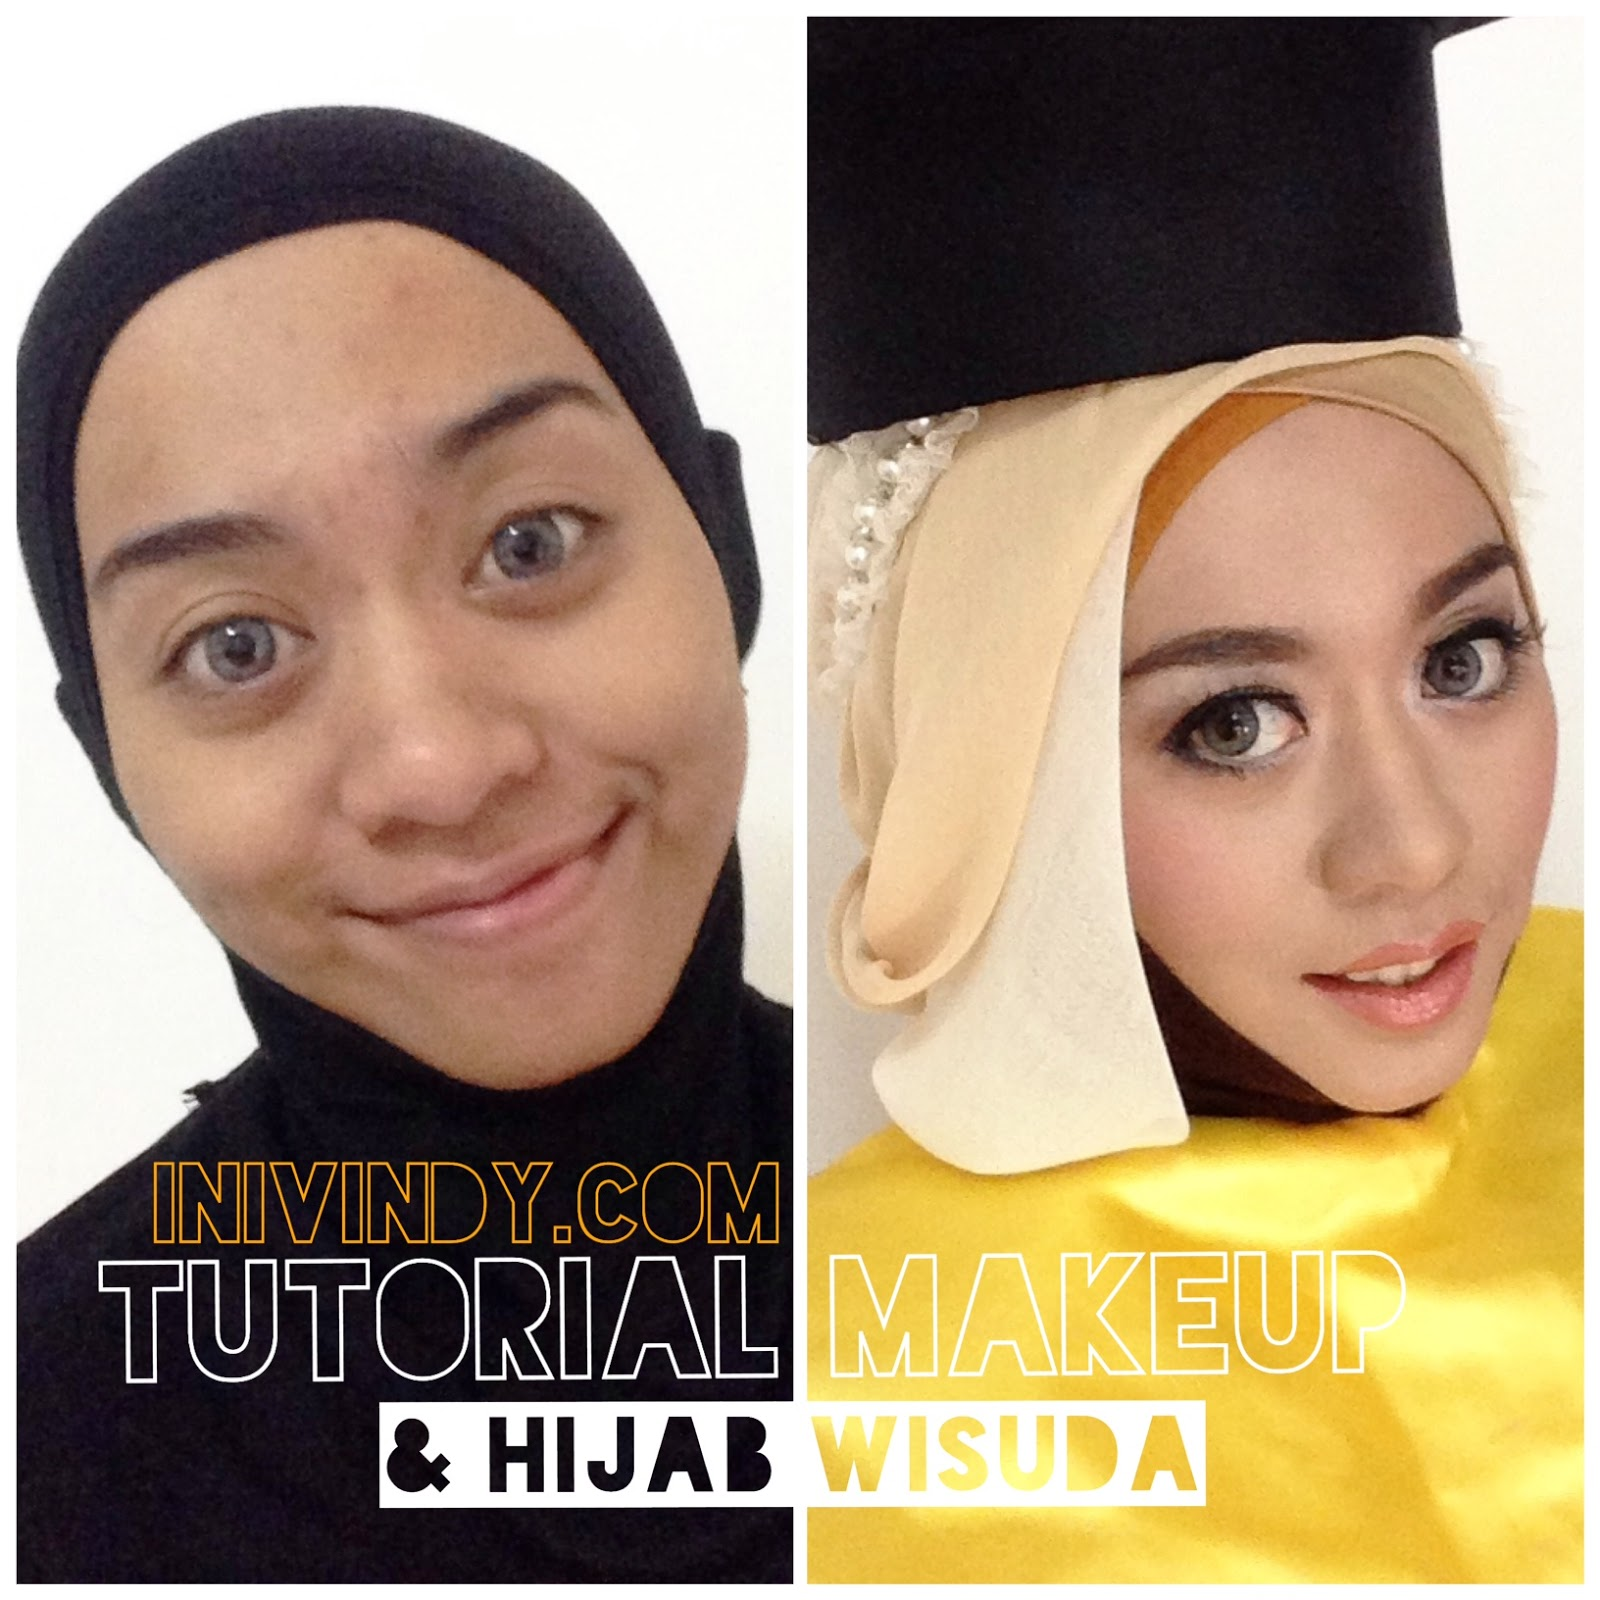 Tutorial Make Up Natural Dan Hijab Wisuda Ala Vindy ...